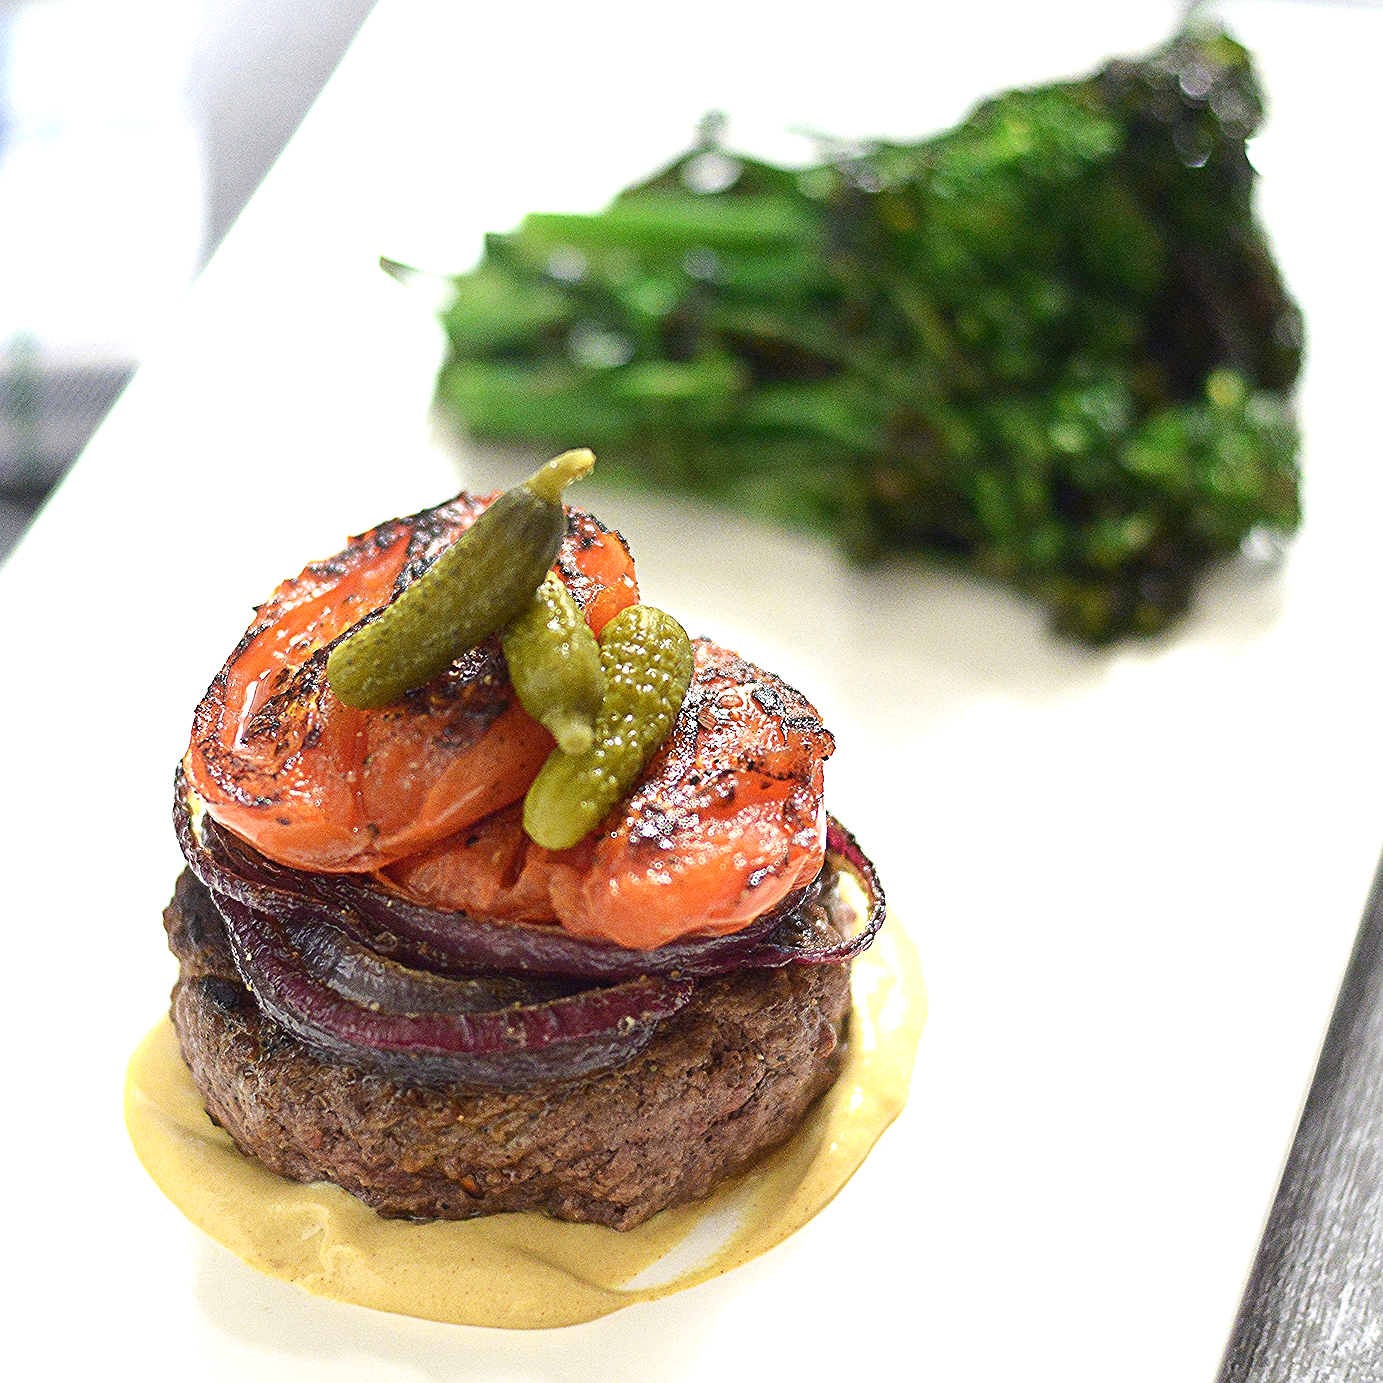 Bun-less Burger w Broccolini